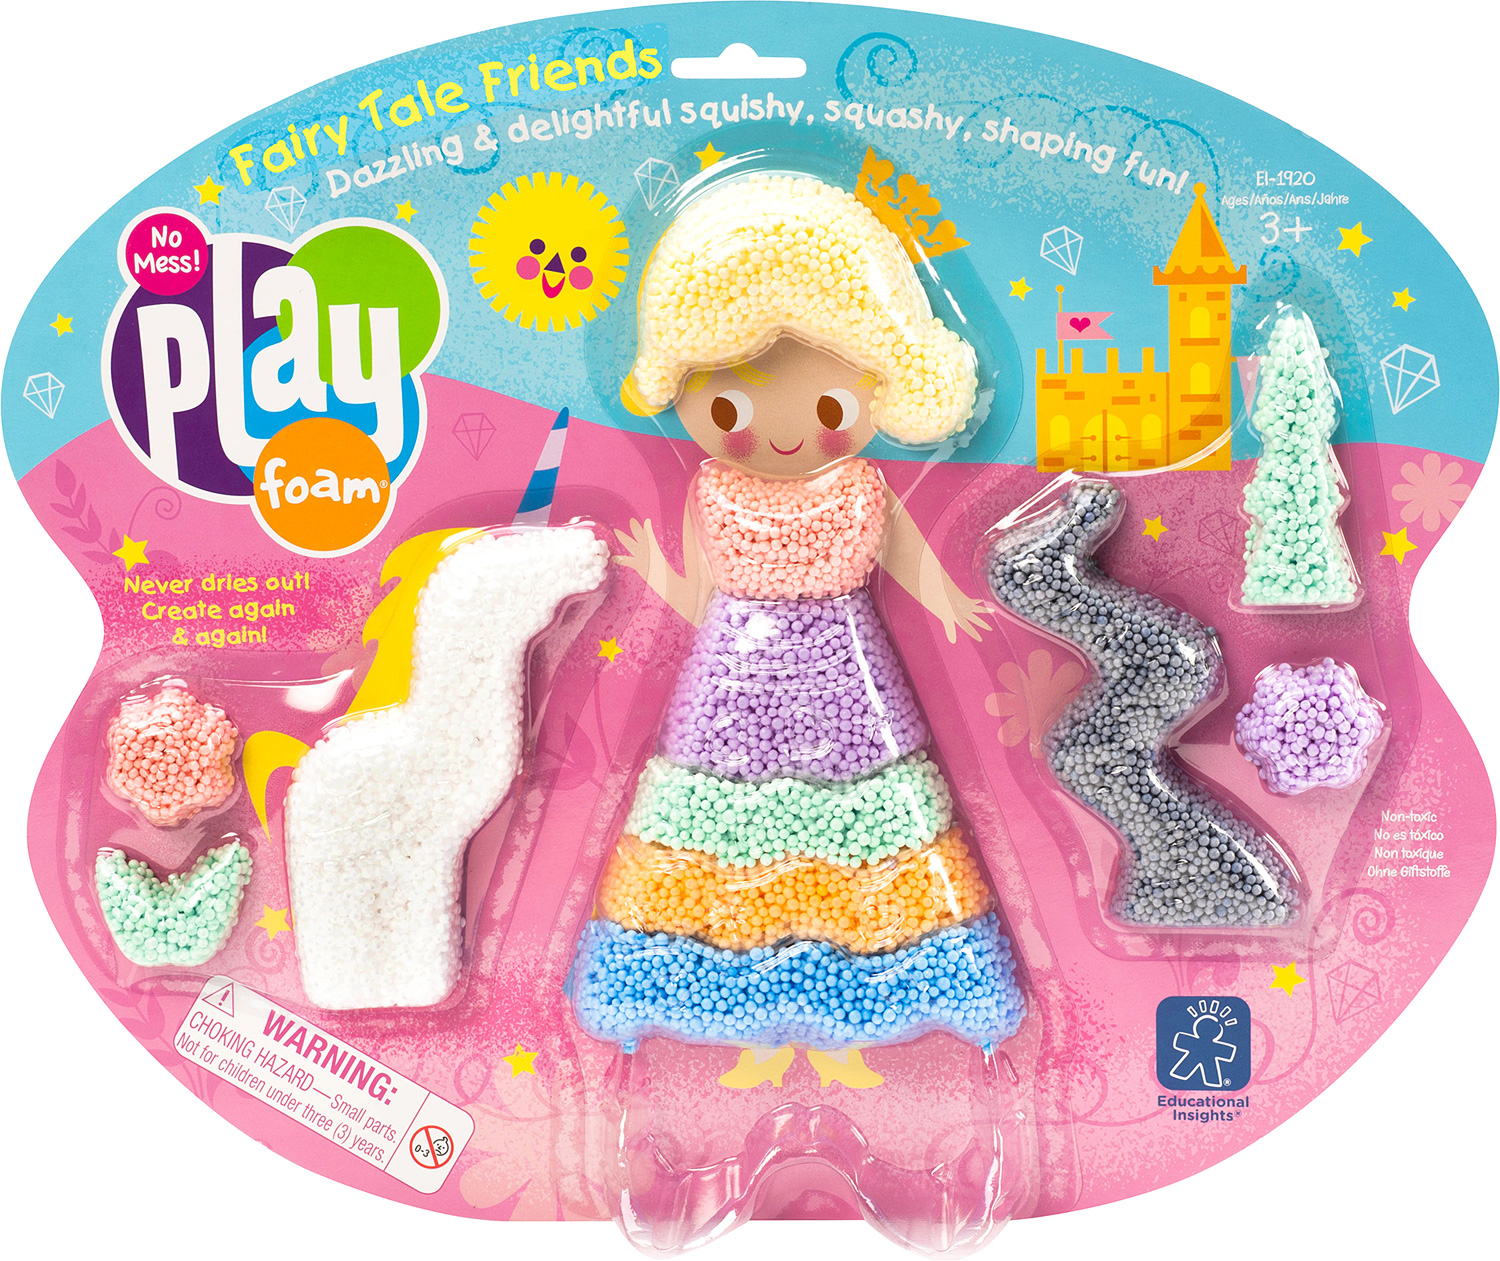 Playfoam Fairy Tale Friends